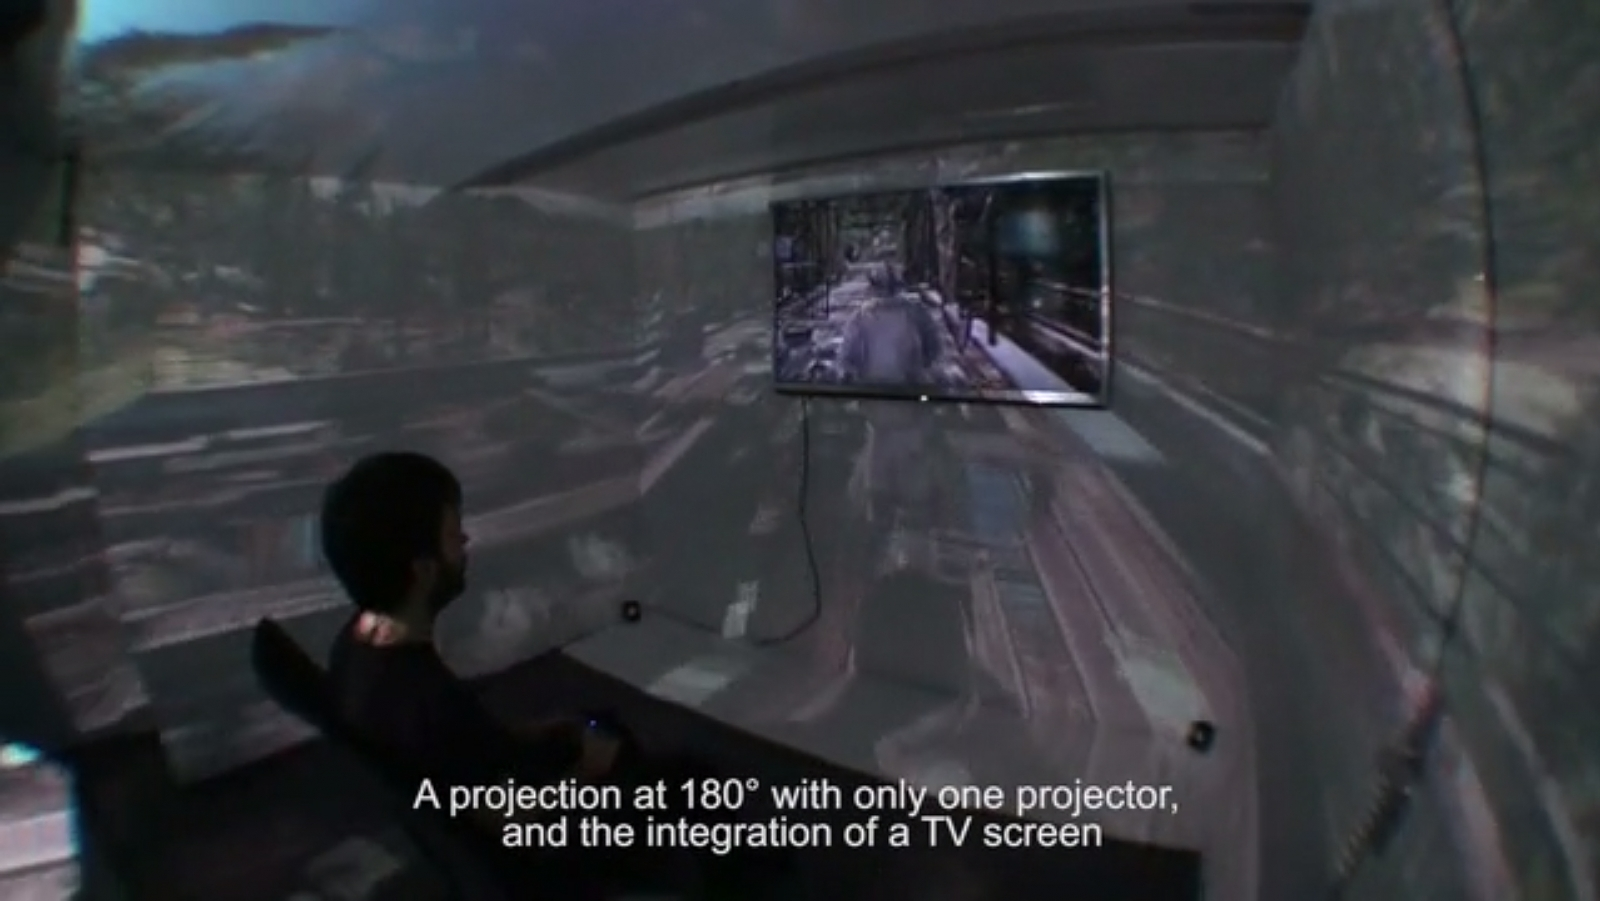 Imagine if your video game could expand beyond your TV screen to fill your entire field of vision - this is the dream of Immersis